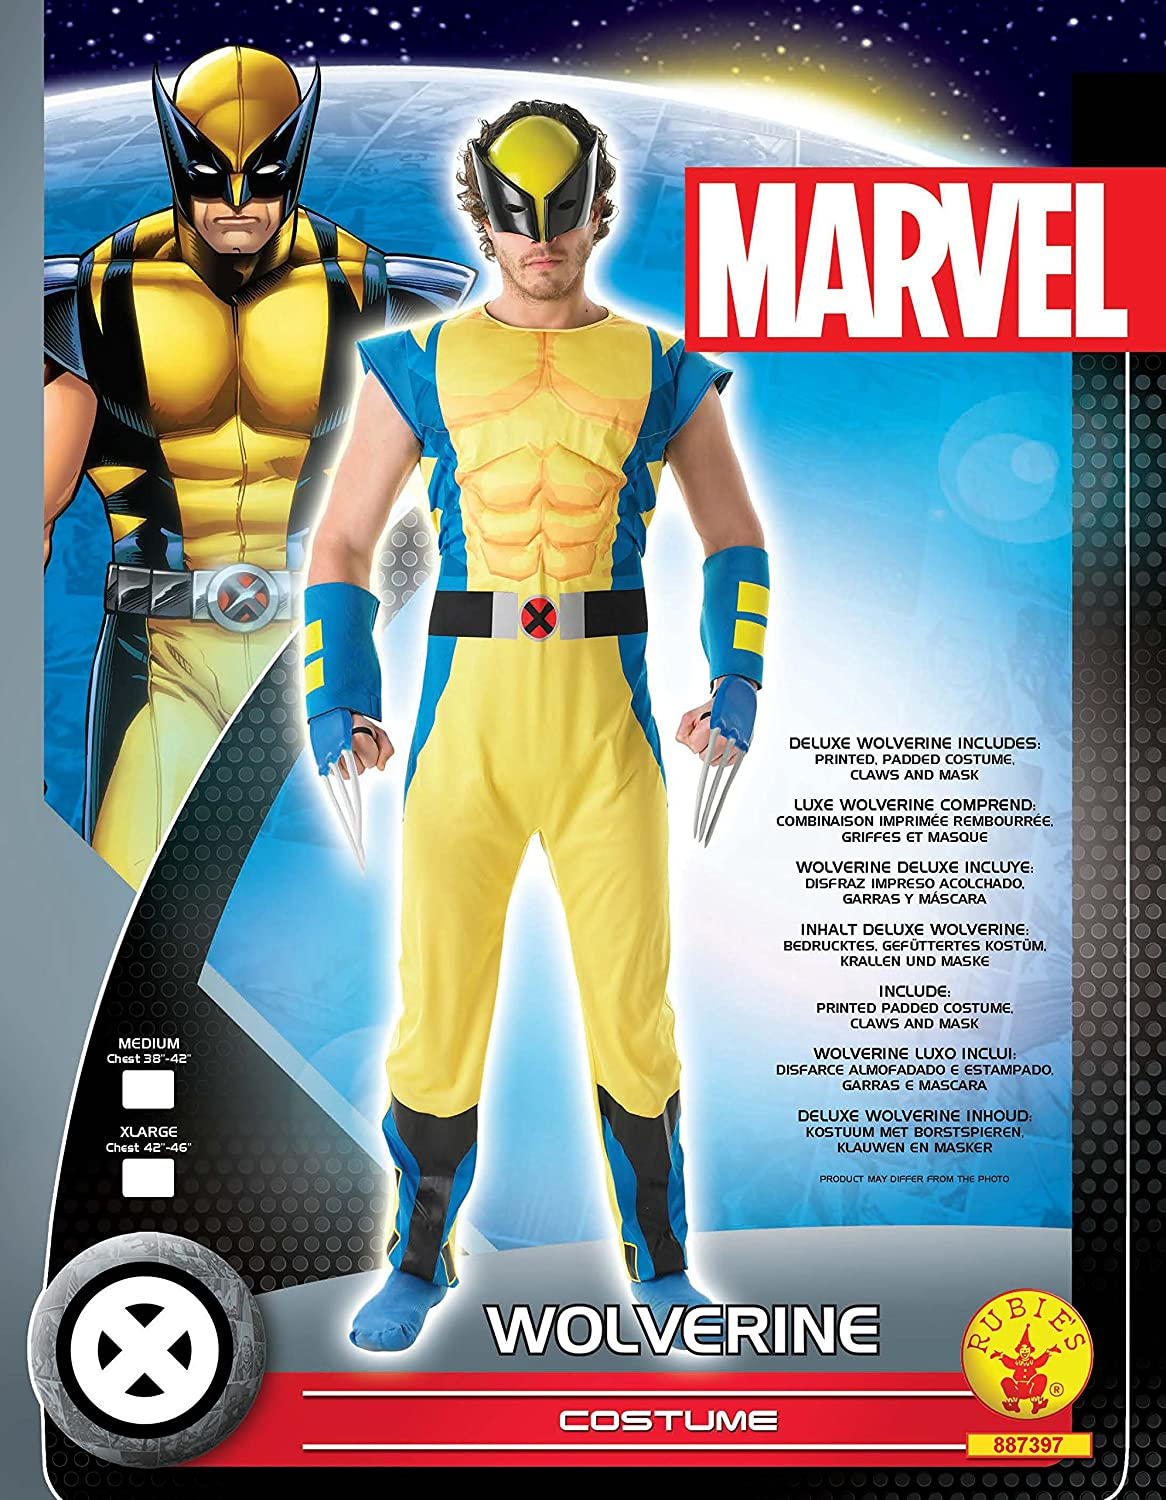 Amazon.com: Rubies Official Marvel Wolverine Deluxe, Adult Costume - Standard Size: Home Improvement